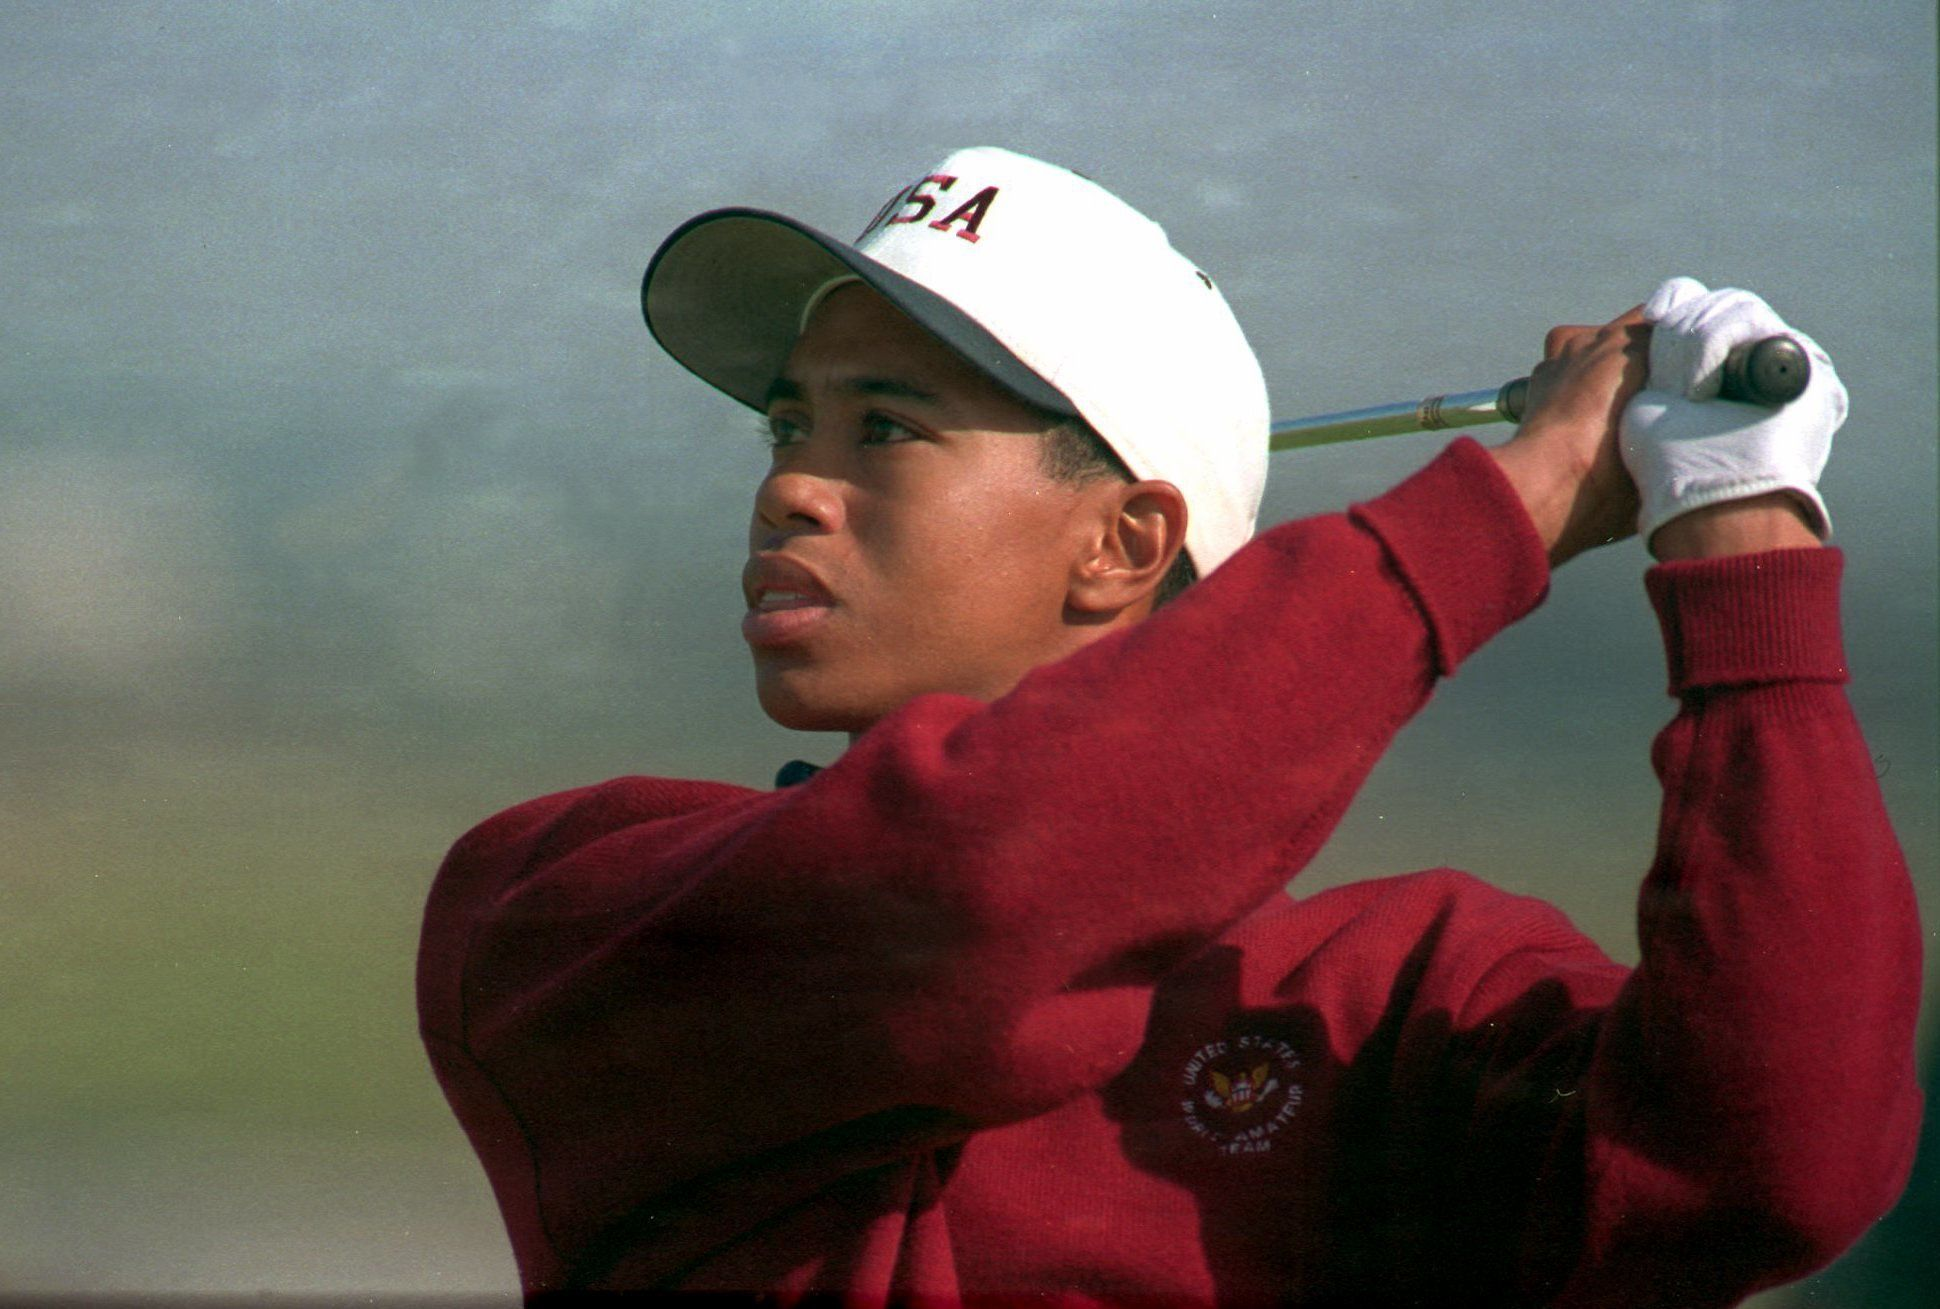 8 OCT 1994:  TIGER WOODS IN ACTION TODAY AT THE WORLD AMATEUR GOLF CUP NEAR PARIS IN FRANCE.  WOODS HIT A 67 TO LEAD THE USA TO A ONE STROKE ADVANTAGE OVER THE GREAT BRITAIN TEAM.  Mandatory Credit: Clive Mason/ALLSPORT